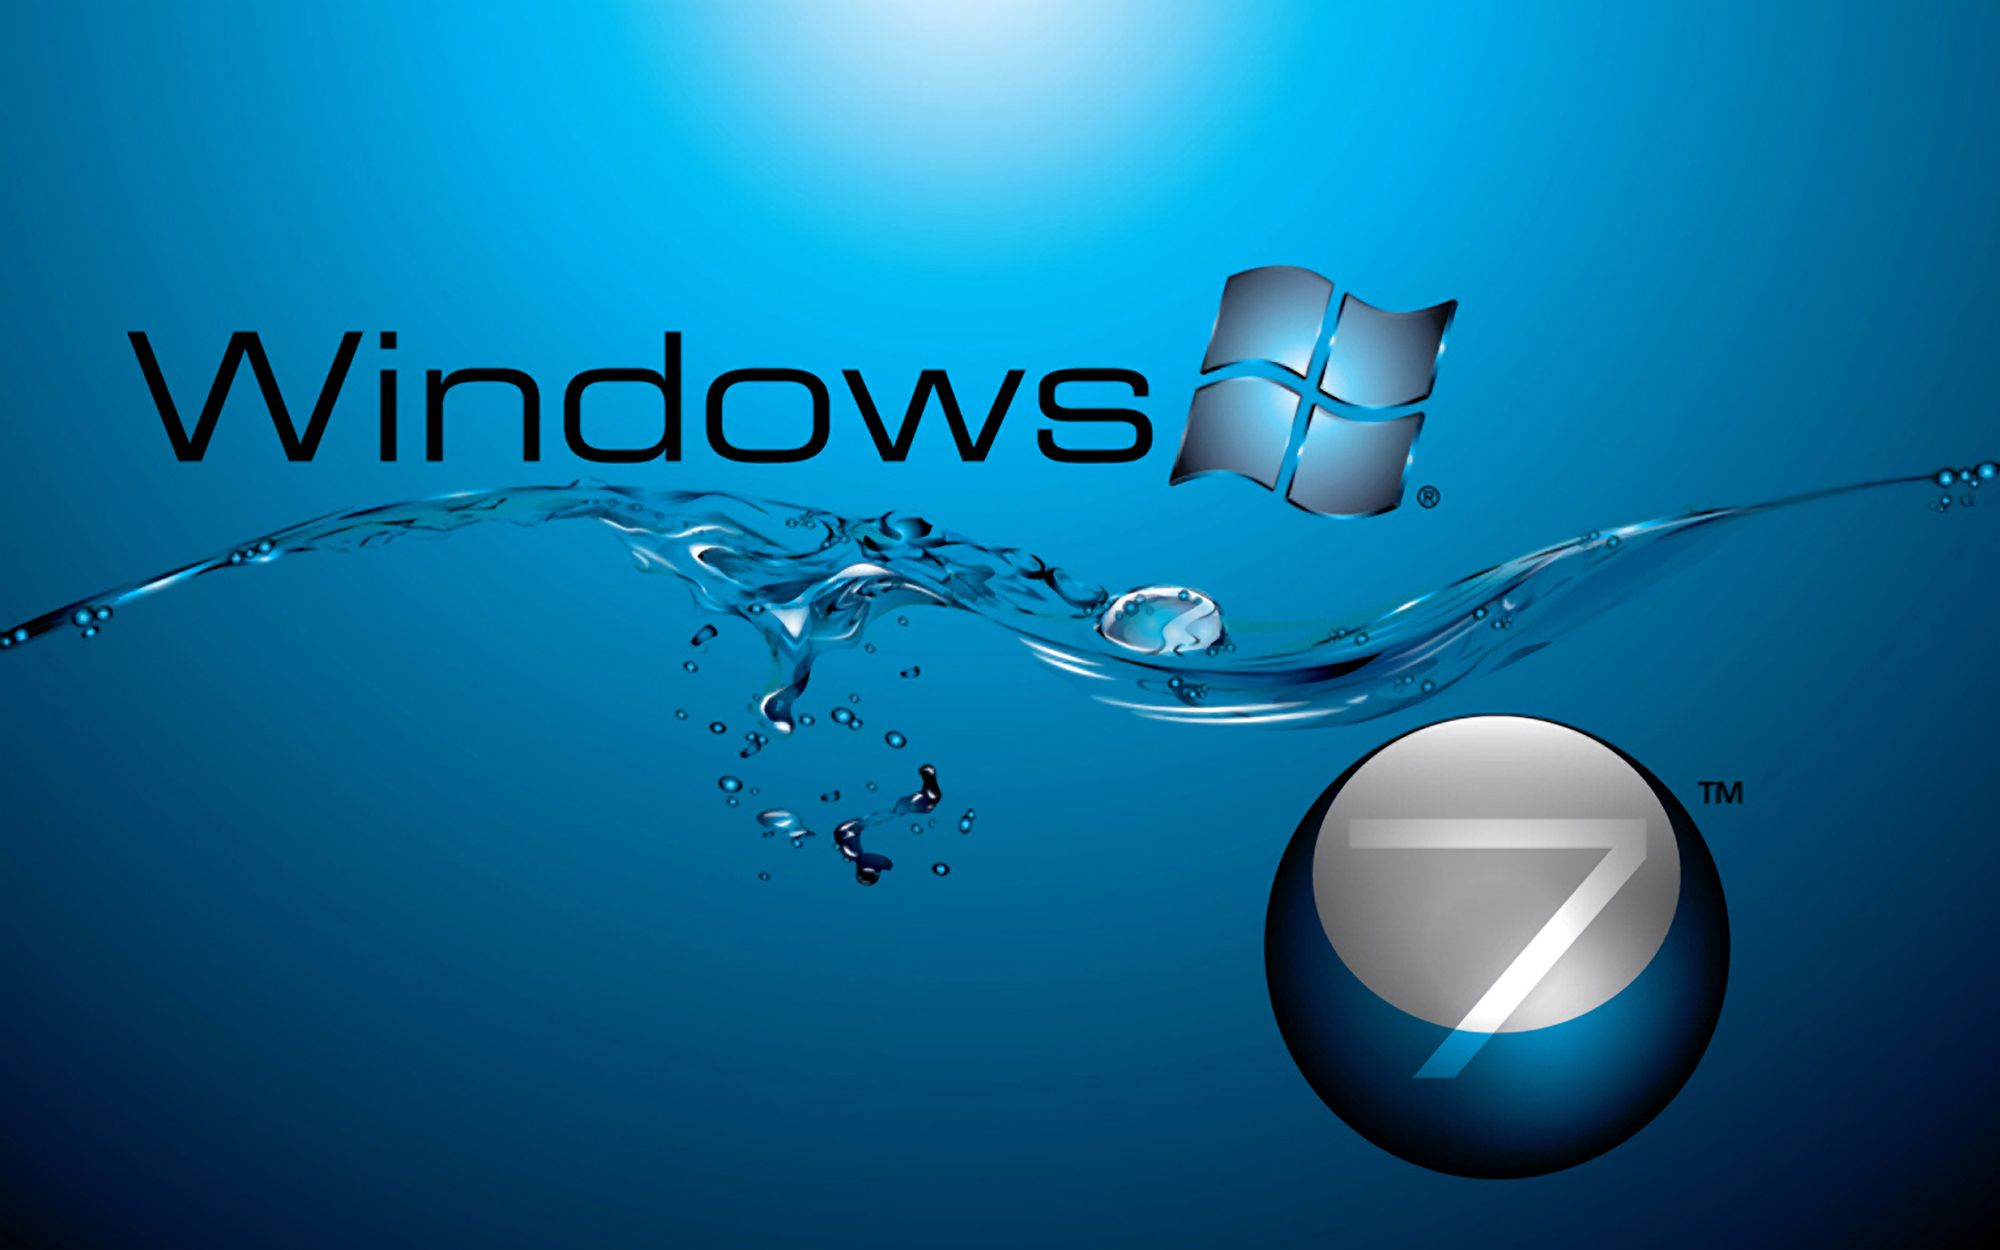 Windows 7 3D Wallpaper Download 30 Wallpapers Adorable 2000x1250